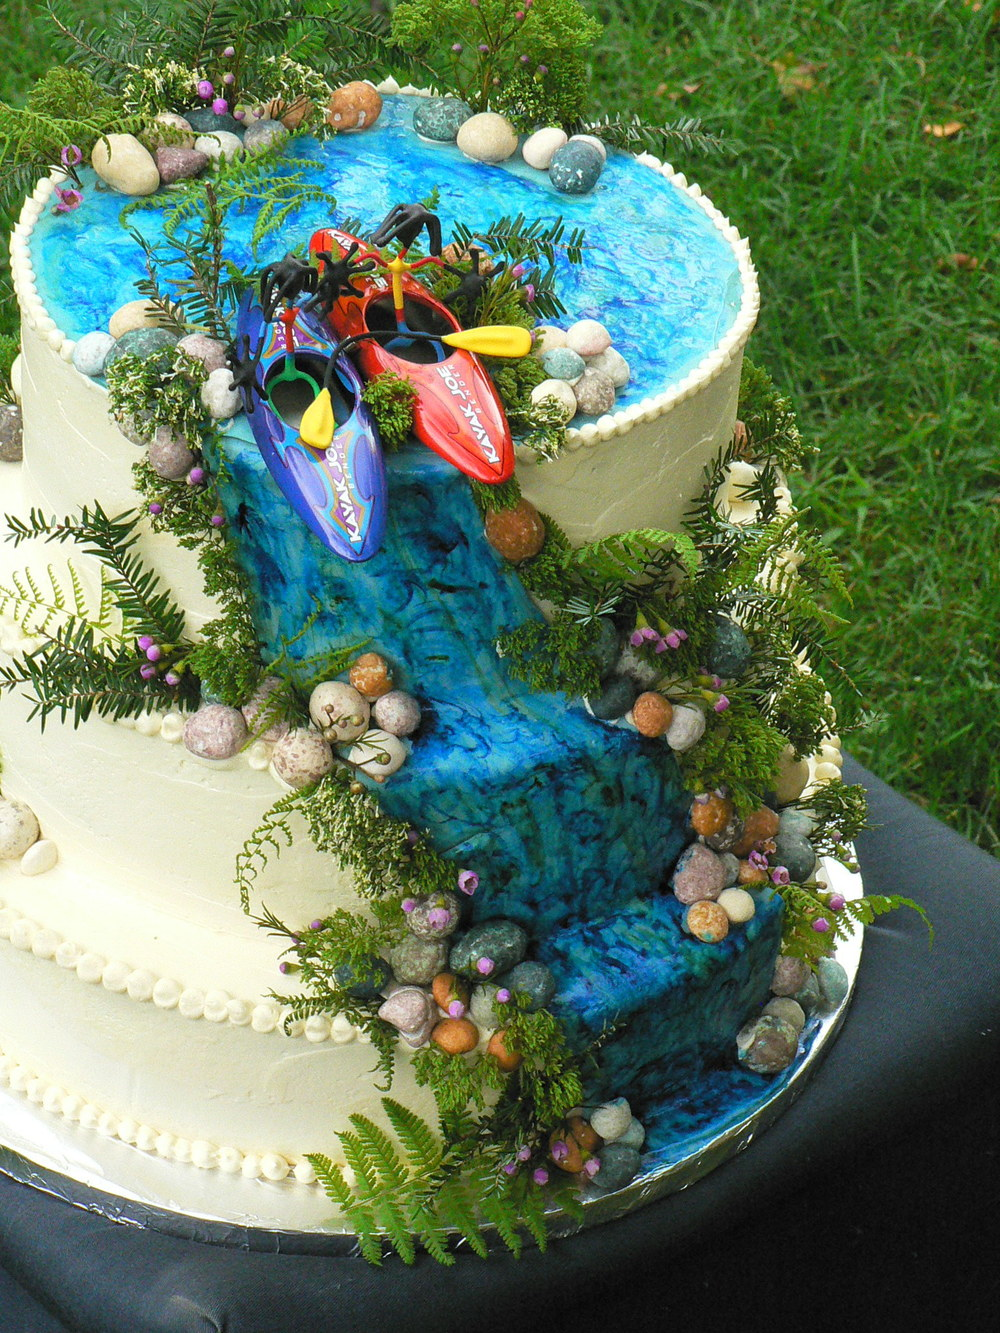 More wedding cakes-10.JPG